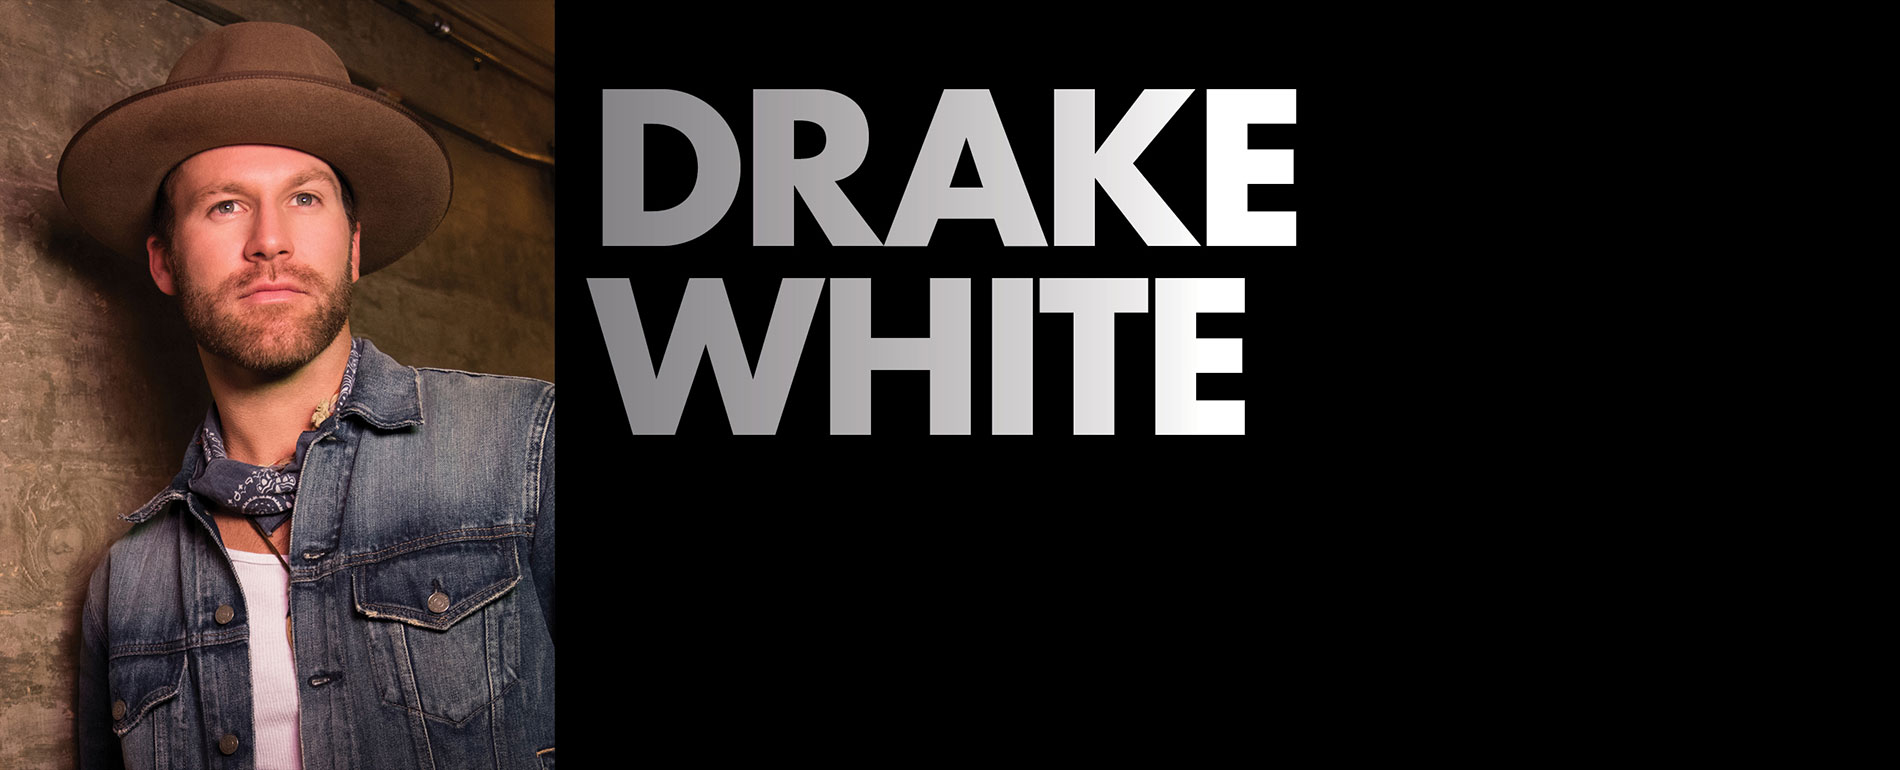 poconos entertainment - drake white